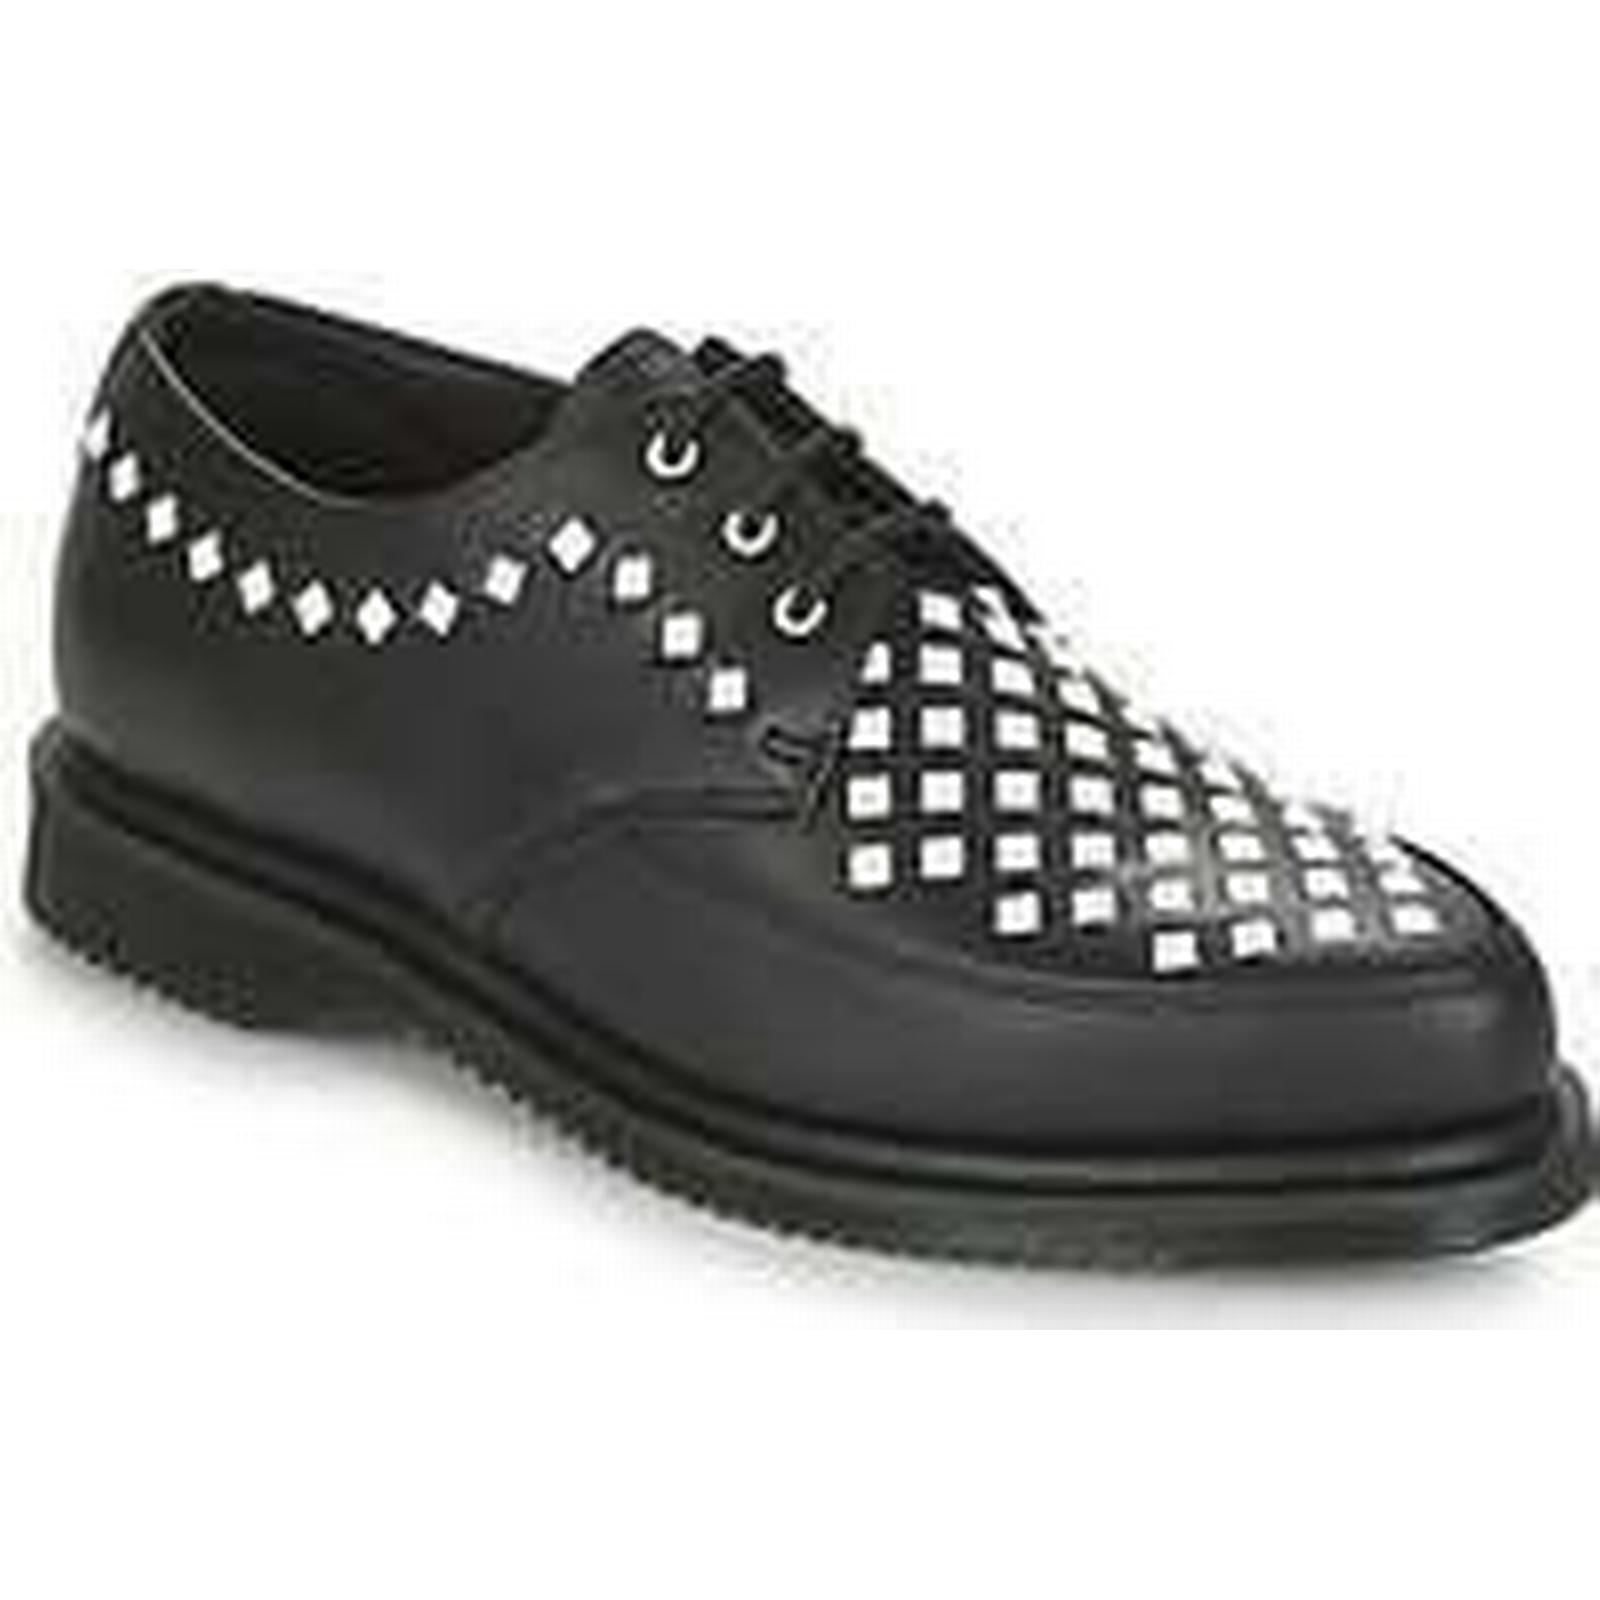 Spartoo.co.uk Dr Martens ROUSDEN in STUD CREEPER women's Casual Shoes in ROUSDEN Black a69859